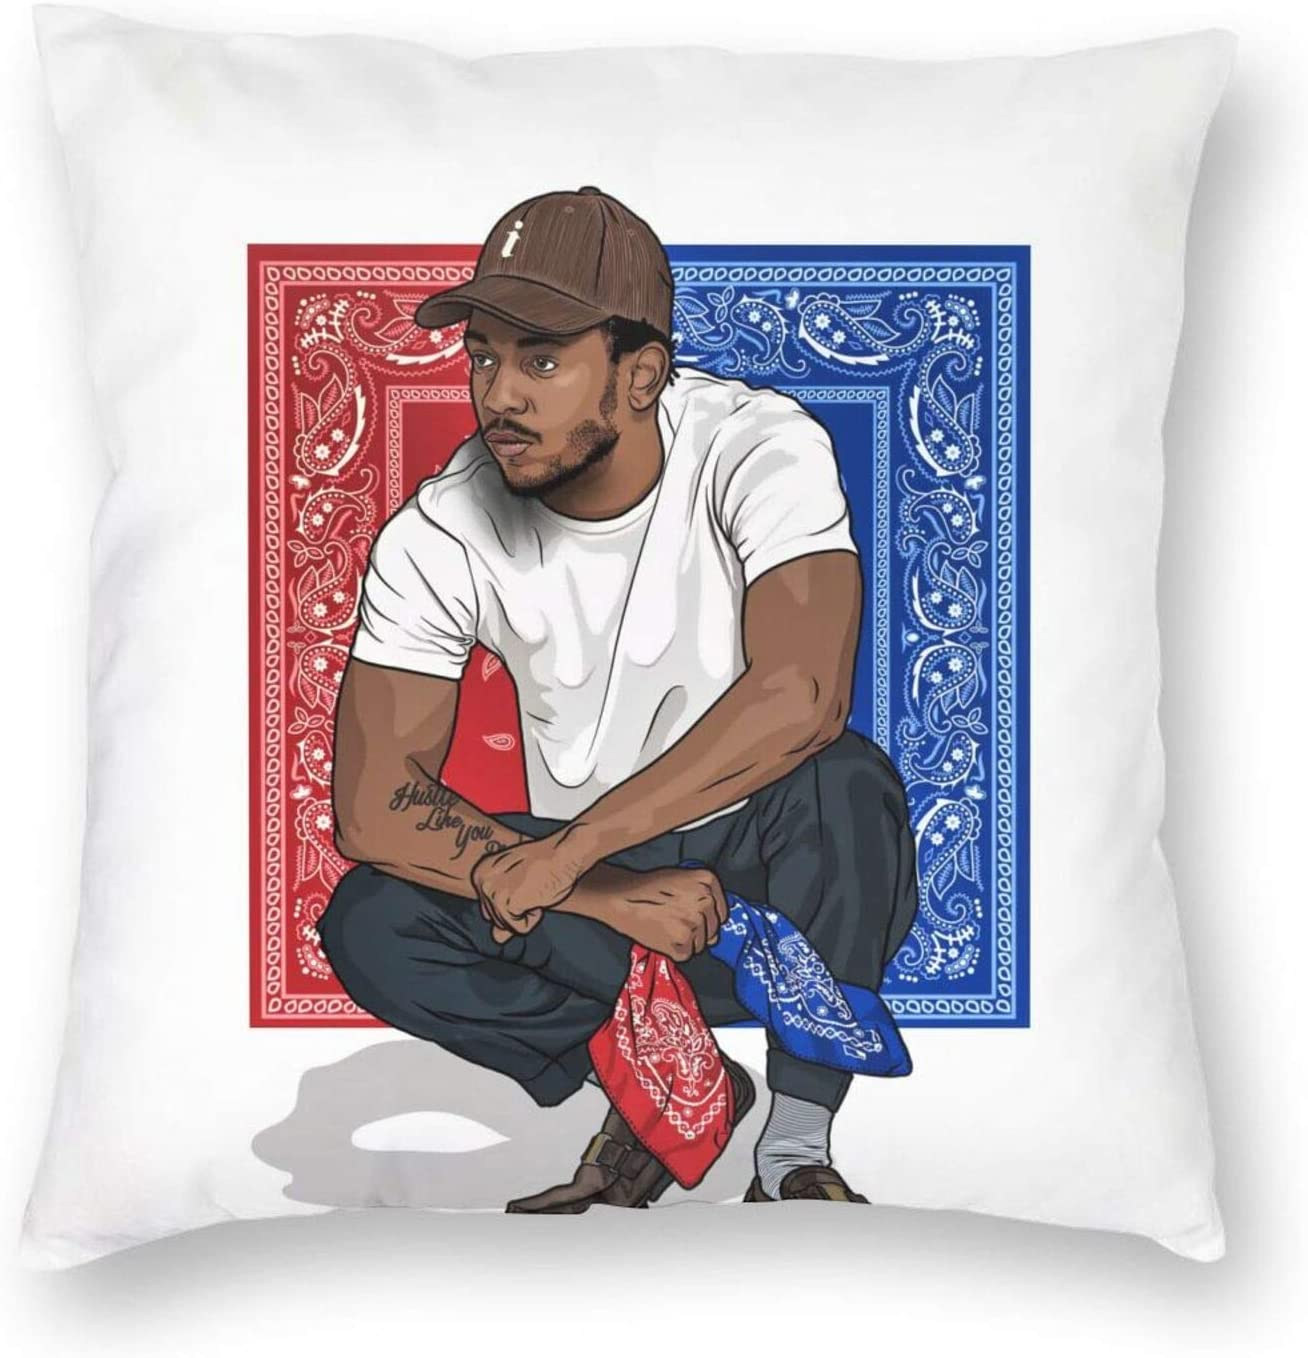 Vbdfd Kendrick Lamar Pillowcase Ultra Soft Body Pillow Cover Pillowcase Breathable Cool Ultra Soft Pillow Cases Wrinkle Shrinkage And Fade Resistant Pillow Covers 16 X16 Home Kitchen